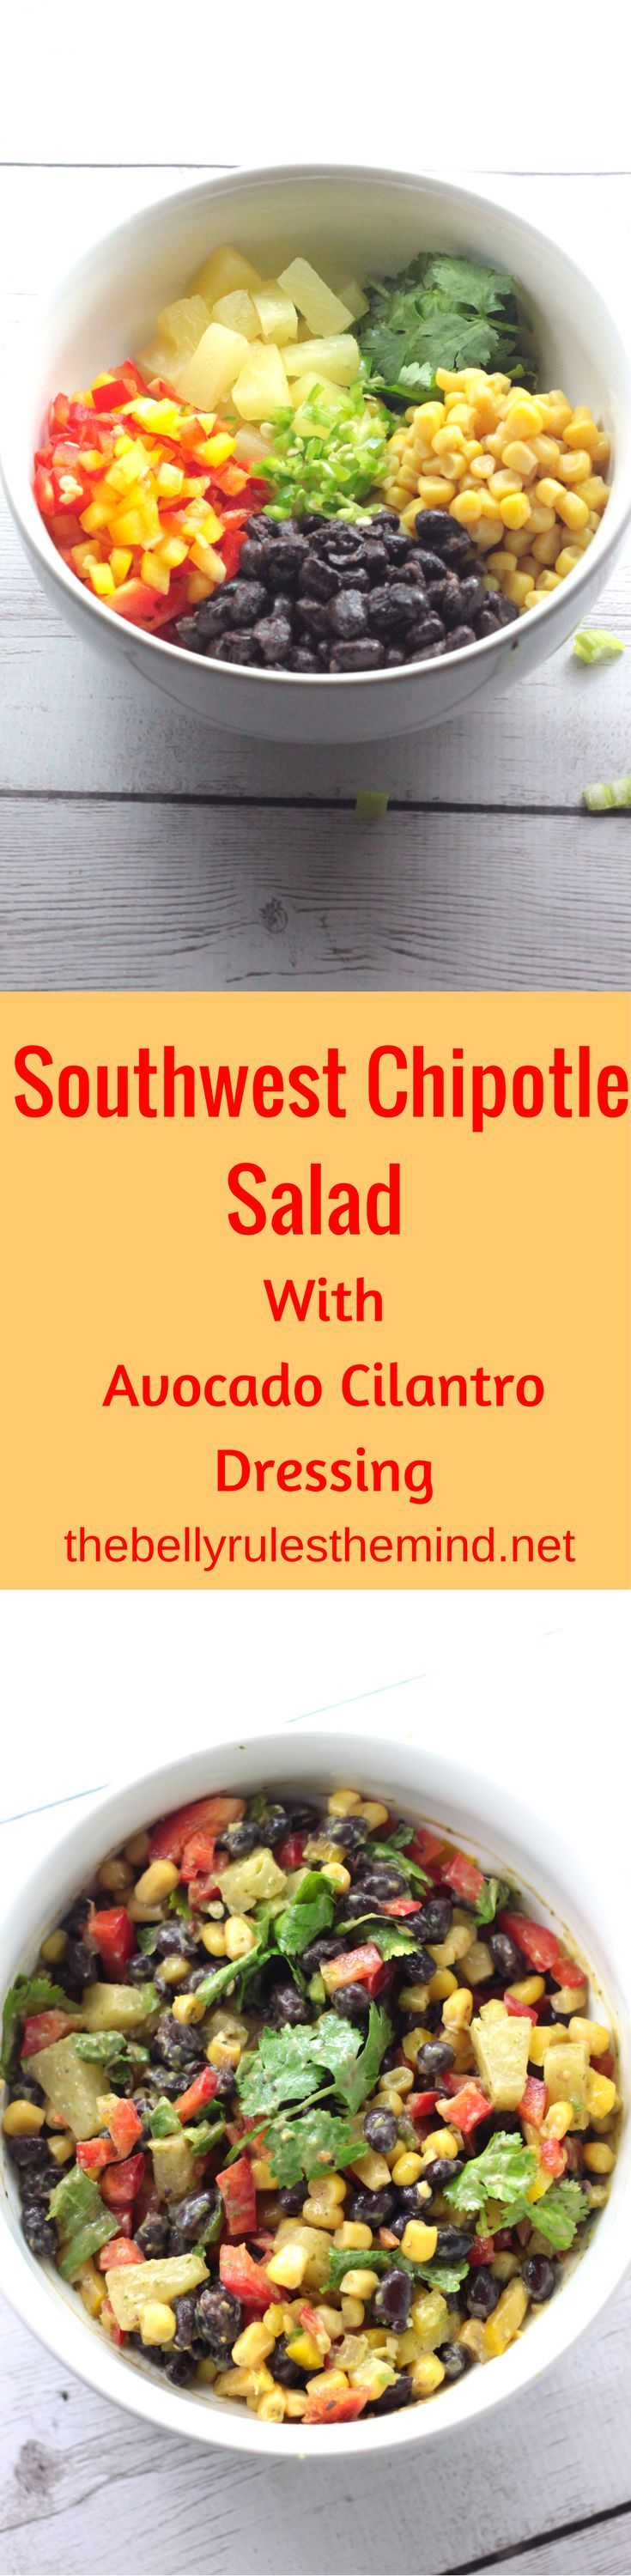 This Tex Mex Salad recipe with the yummy avocado cilantro dressing is a must try. One of the yummiest salad bowls ever. Much better than a store bough salad and is loaded with protein and fiber.|www.thebellyrulesthemind @Bellyrulesdmind